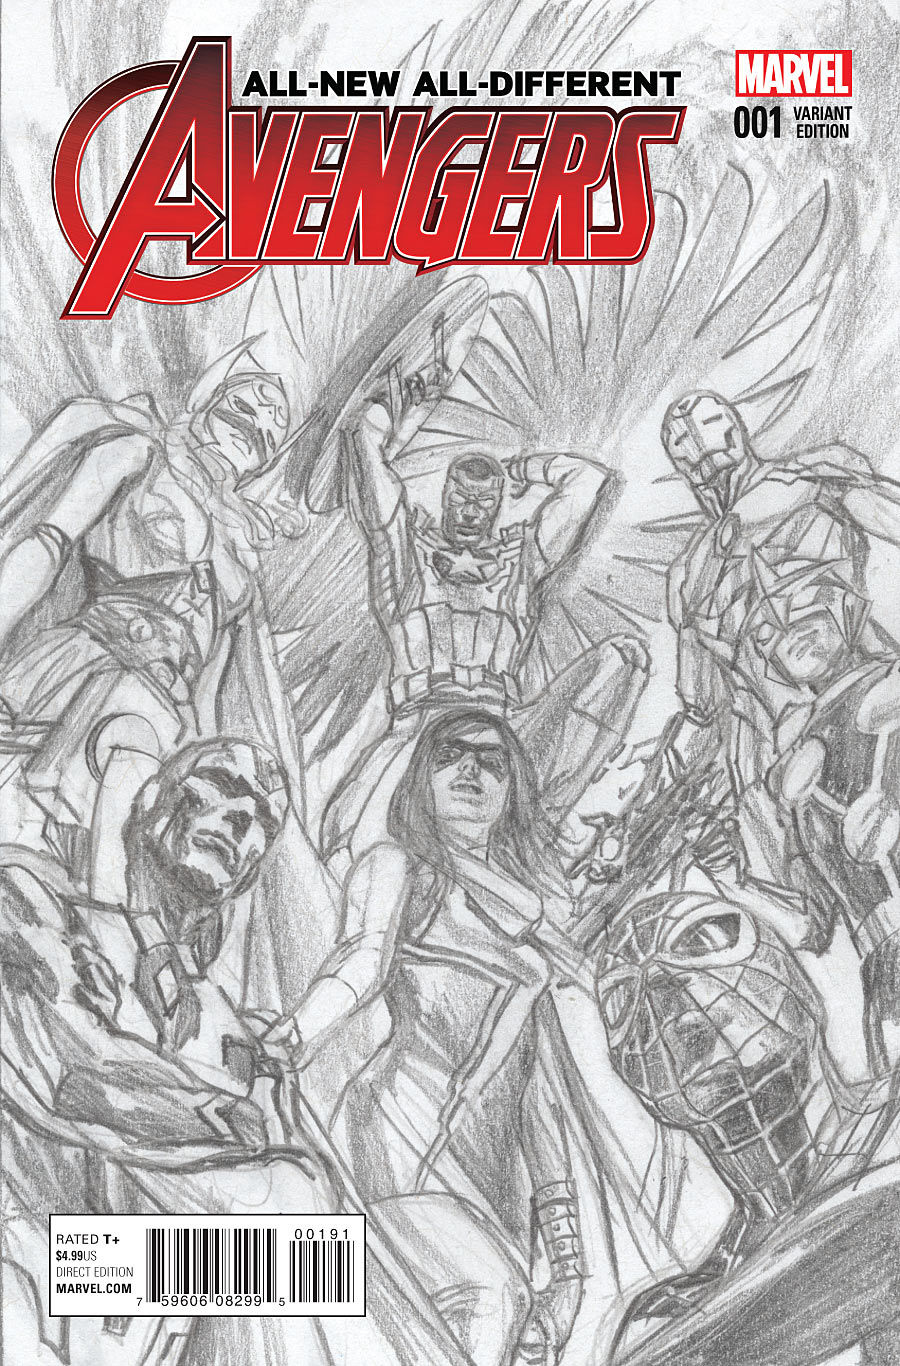 All-New, All-Different Avengers Vol 1 1 Sketch Variant.jpg